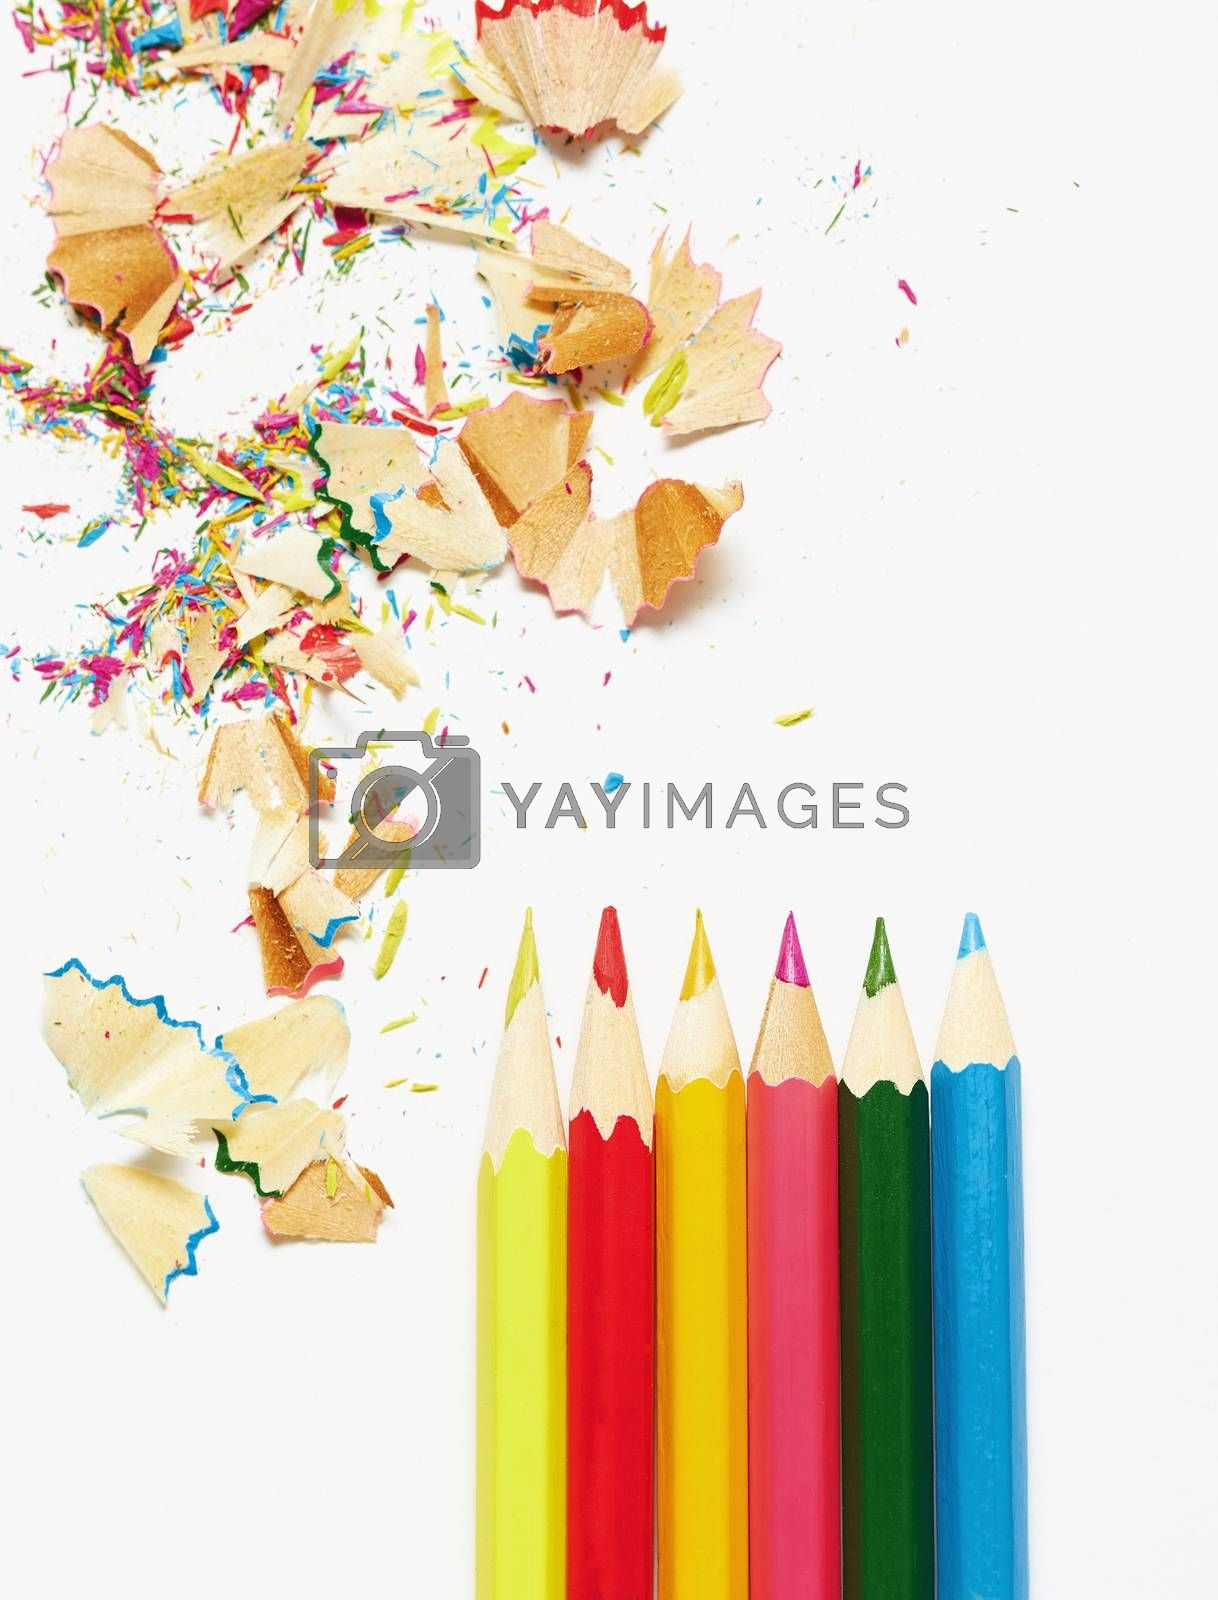 Colored pencils and trash by Novic